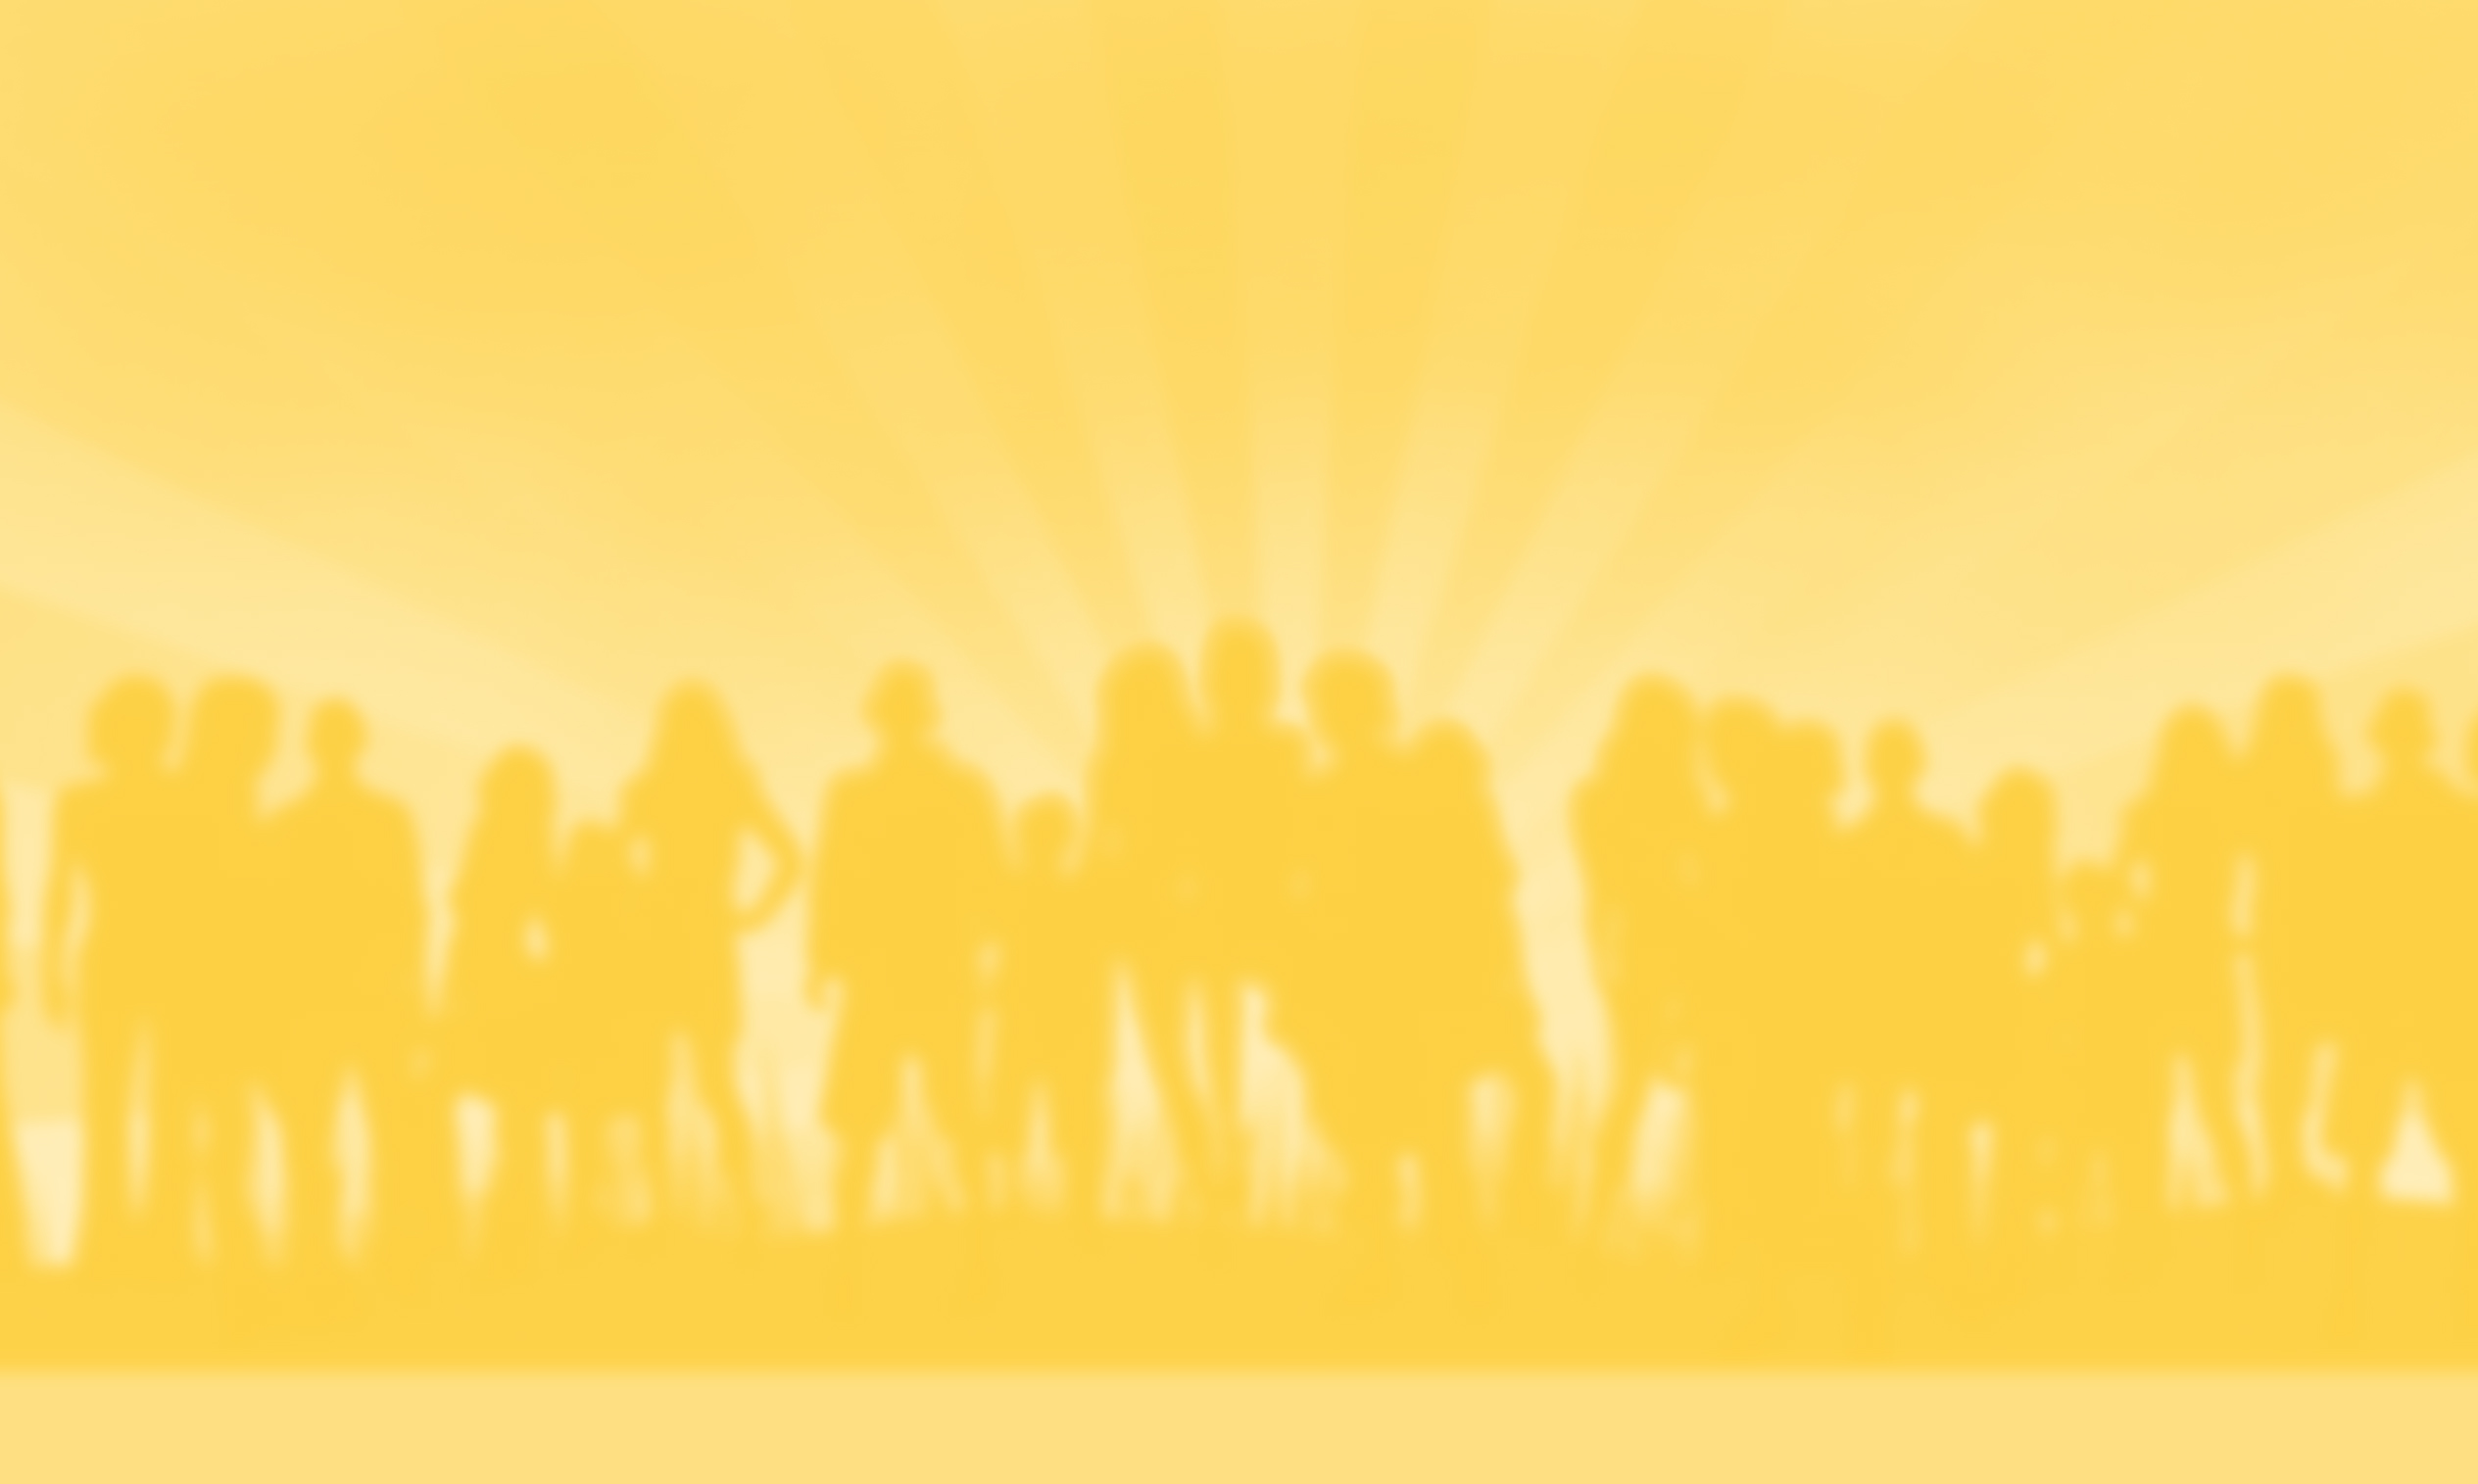 Silhouette of people standing together